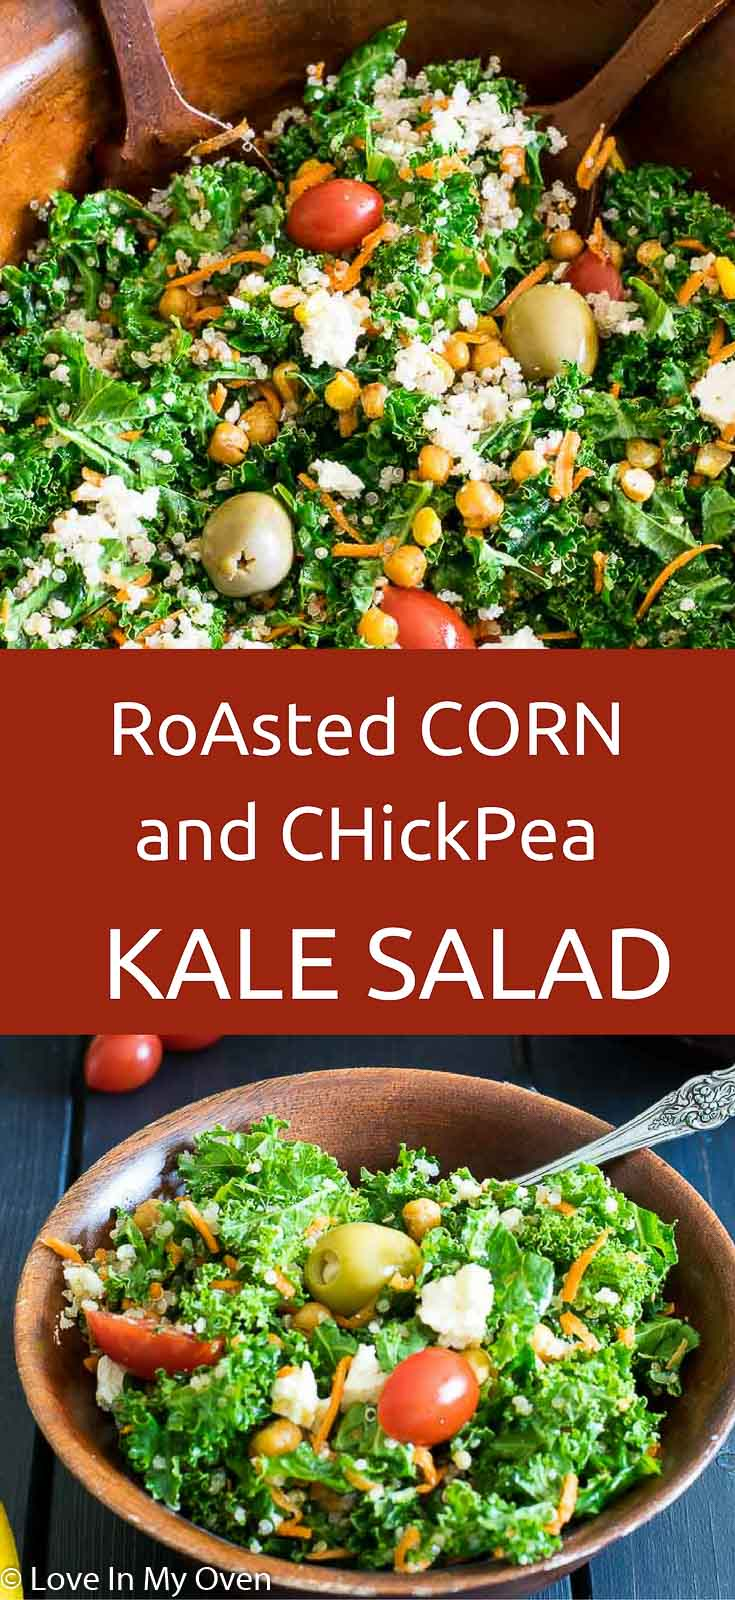 Roasted corn and chickpeas tossed into fresh kale and lightly coated in a maple-lemon vinaigrette.